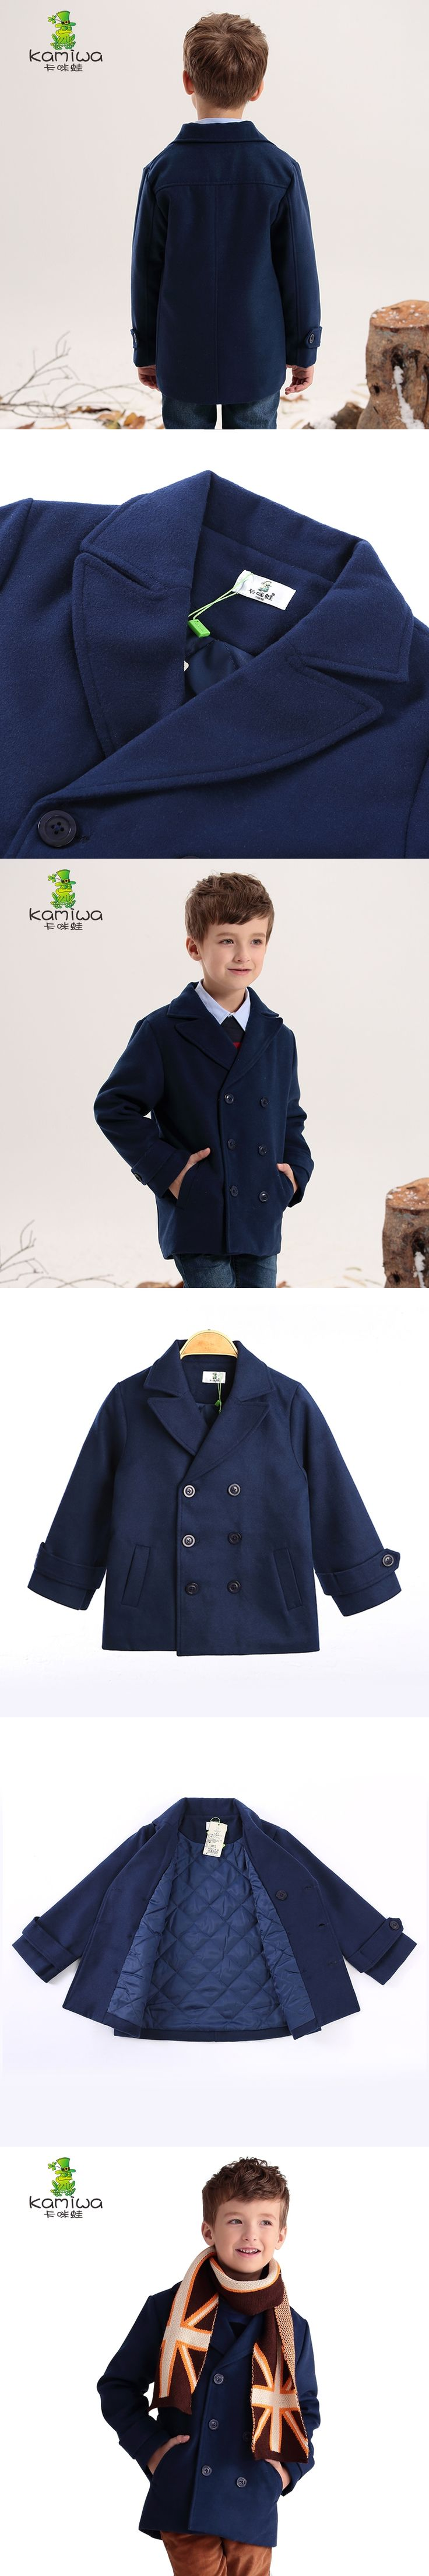 KAMIWA 2017 Woolen Boys Winter Coats Thickening Cotton-padded Jackets Autumn Outerwear Children'sClothing Kids Clothes